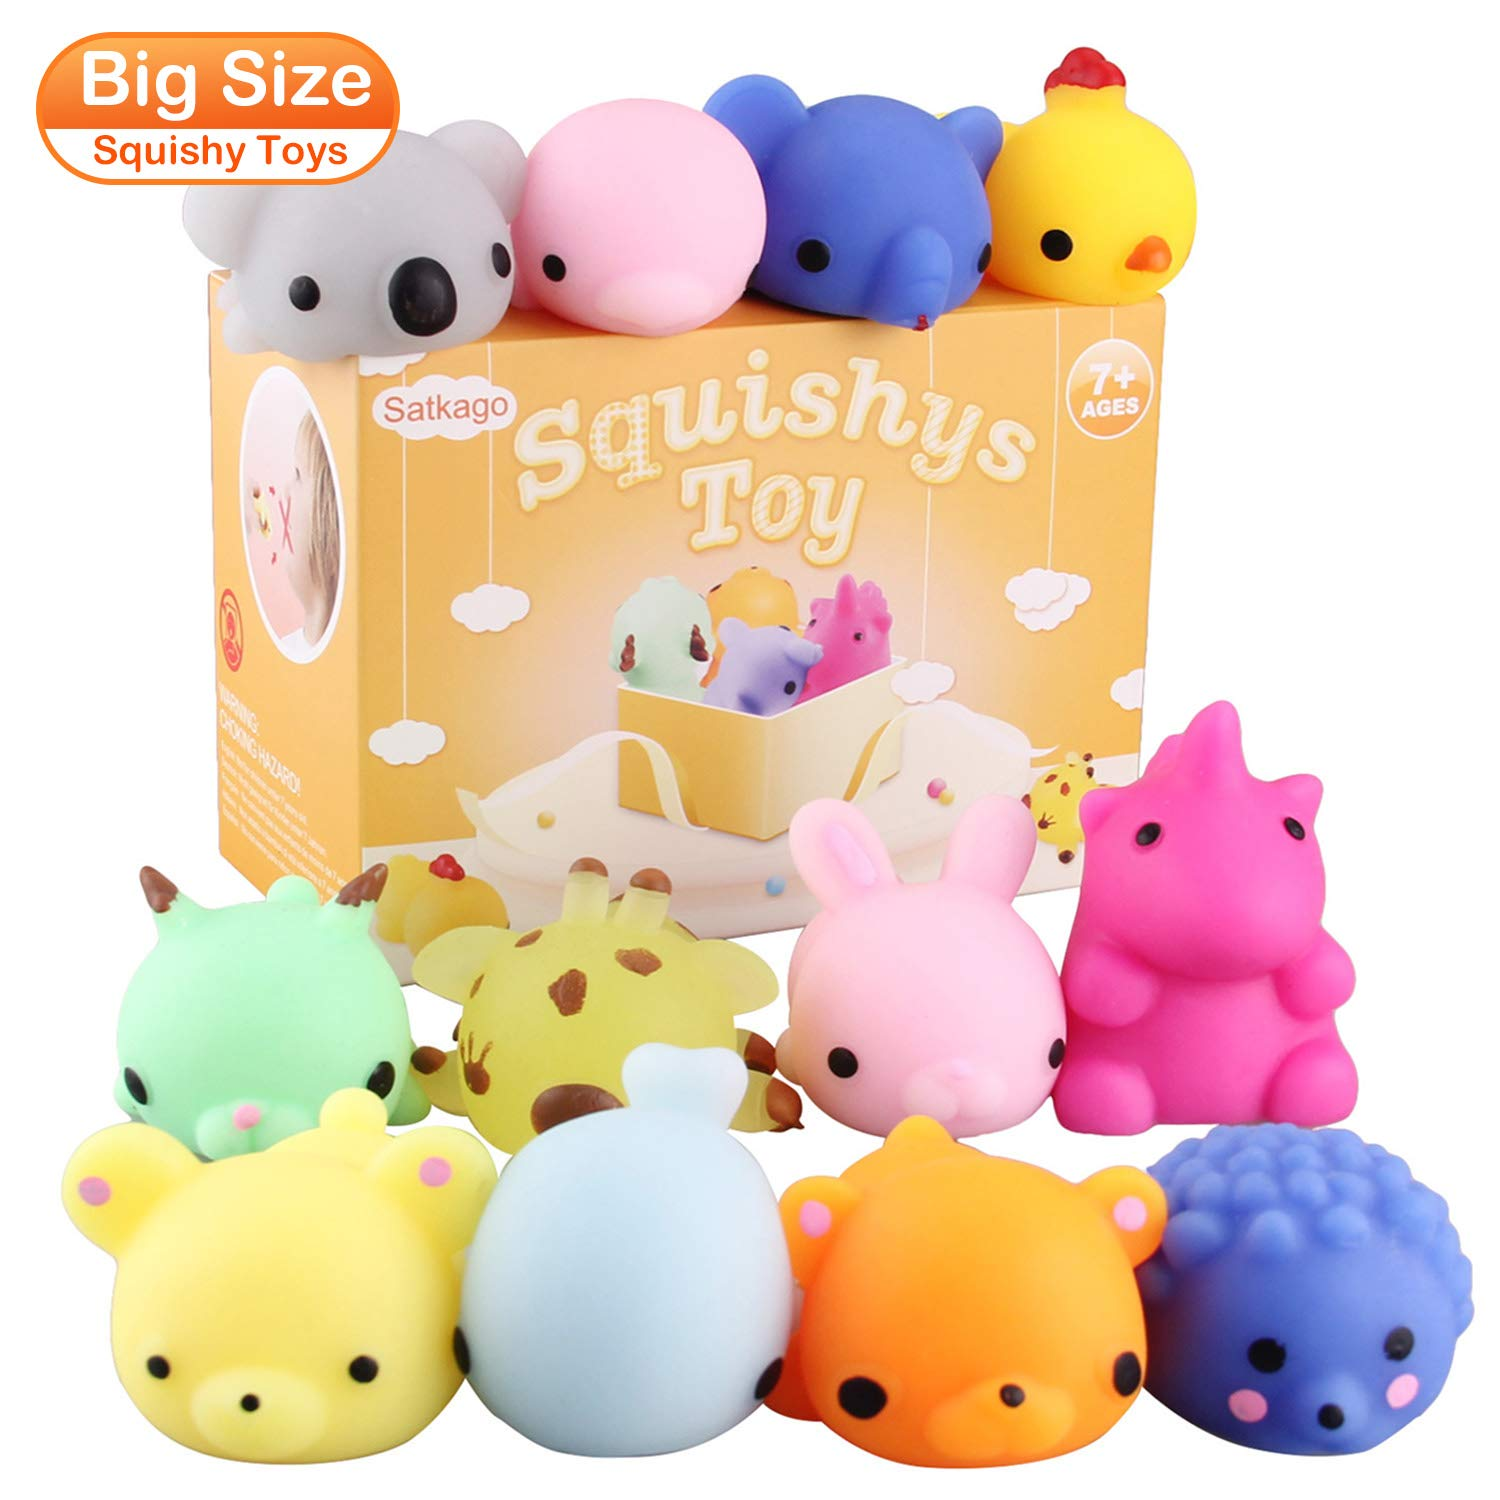 Satkago 3rd Generation Squishys Toys, 12pcs Big Upgrade Size Mochi Kawaii Squeeze Cartoon Animal Toys for Kids Adults Stress Relieve Pressure Release Anxiety Toy by Satkago (Image #8)